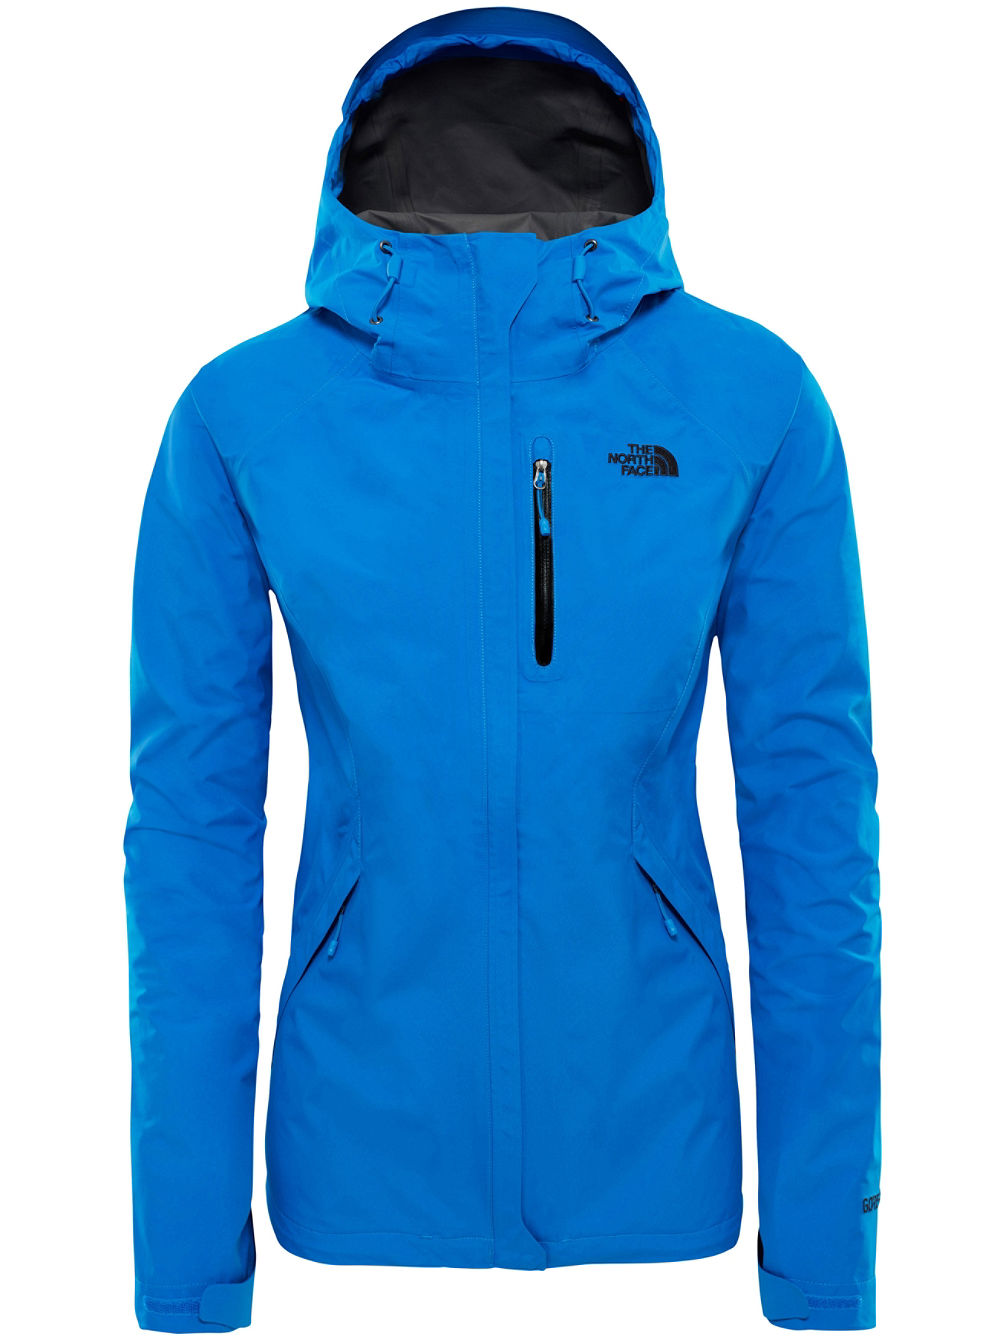 7514459829b Køb THE NORTH FACE Dryzzle Outdoor Jacket online hos Blue Tomato